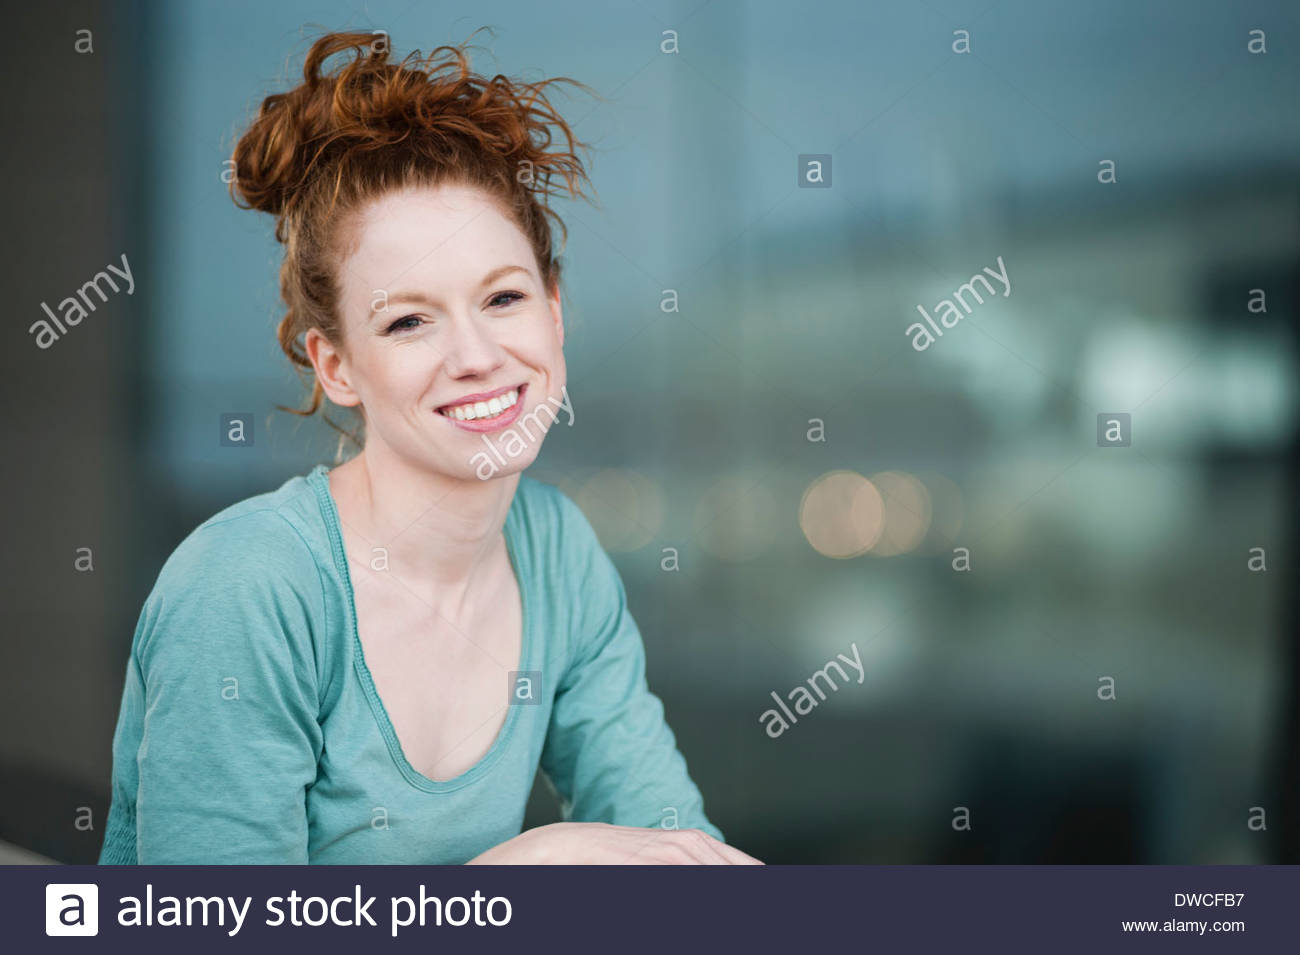 Portrait of happy young woman Photo Stock